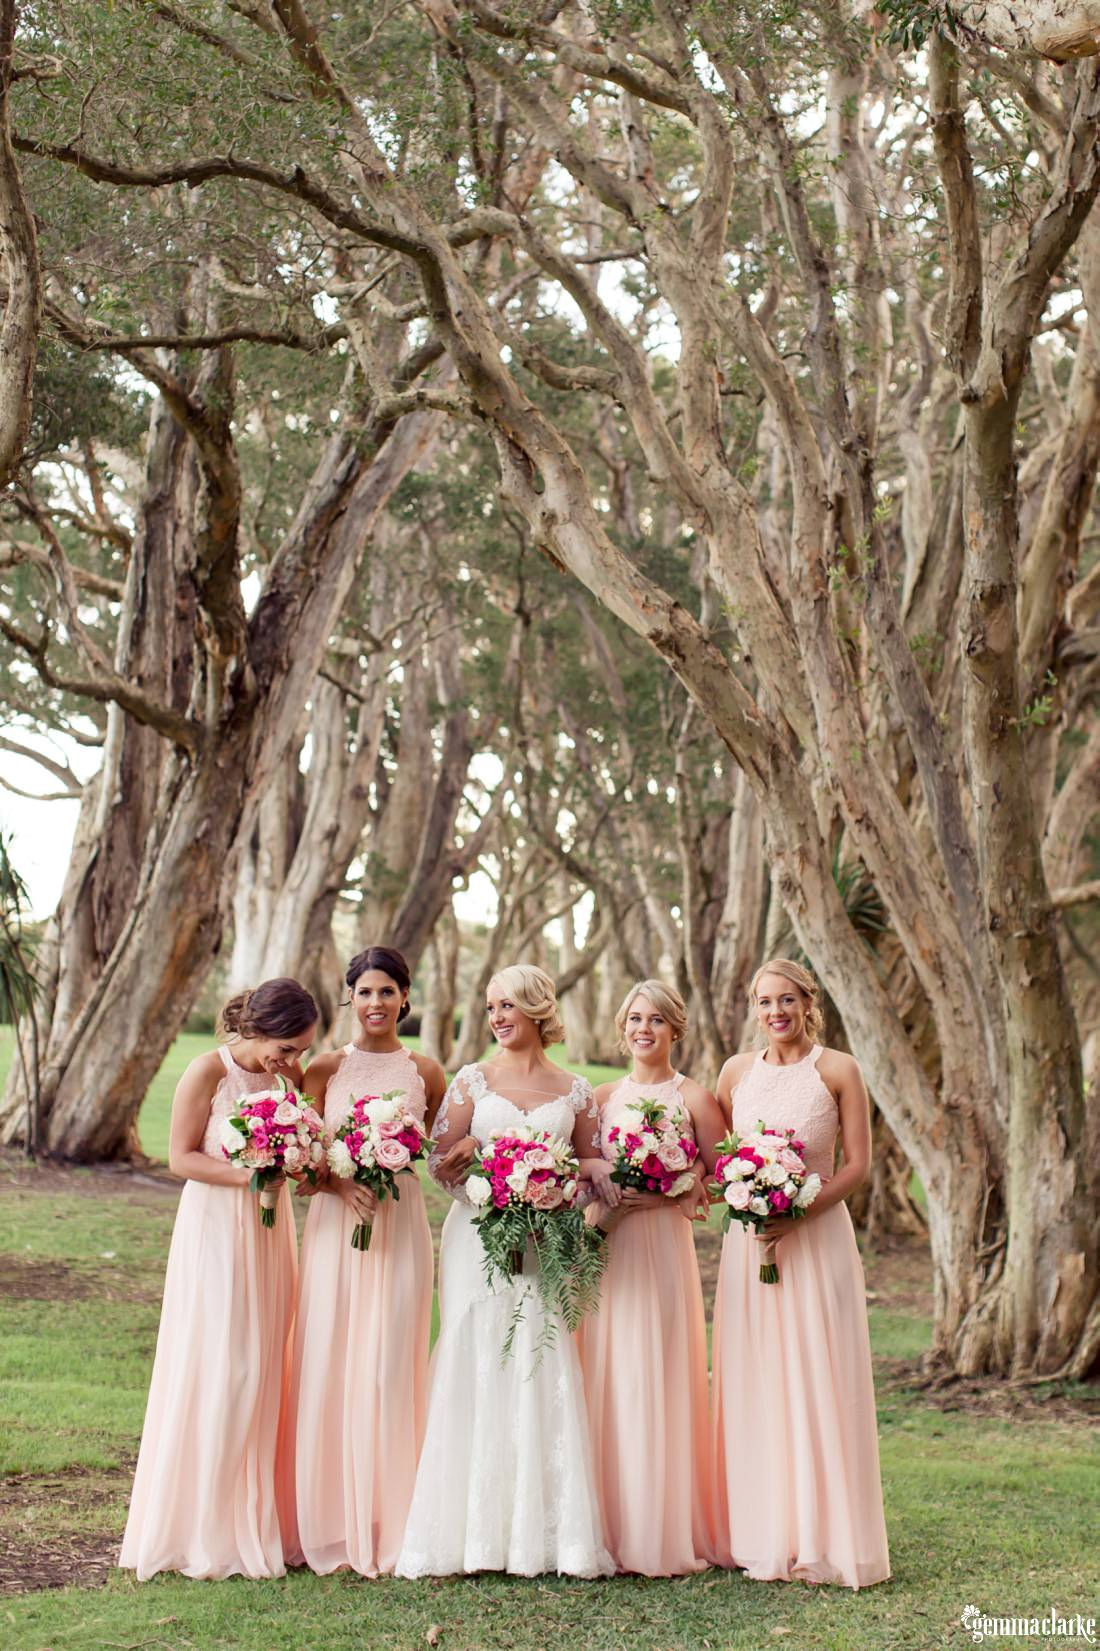 A bride and her bridesmaids standing together in front of some trees - Centennial Park Wedding